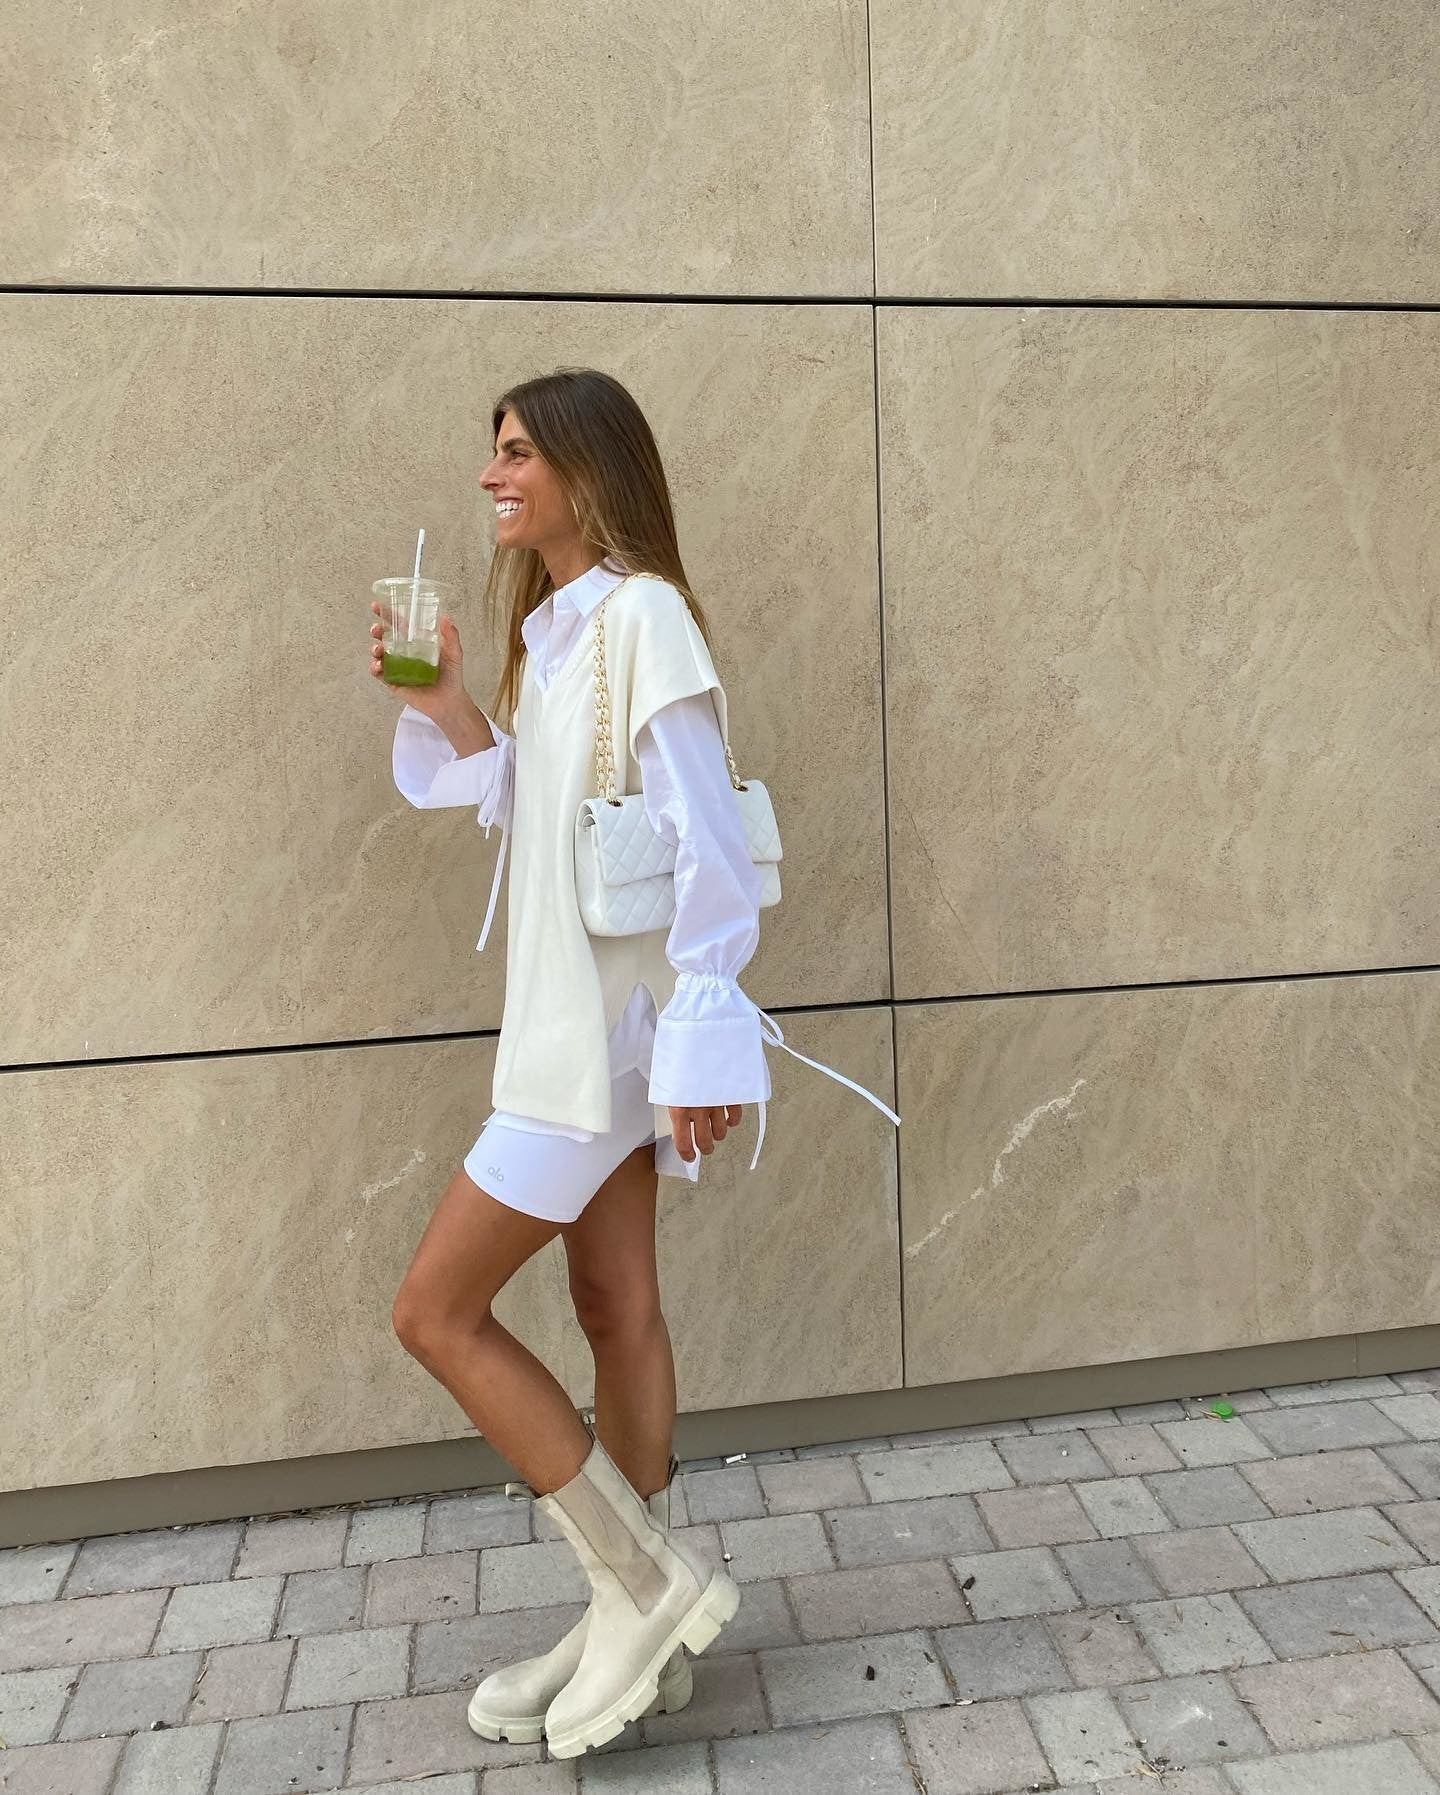 @debiflue wearing white biker shorts with chunky boots, a long-sleeve dress shirt, and an oversized sweater vest for a chic biker short outfit.